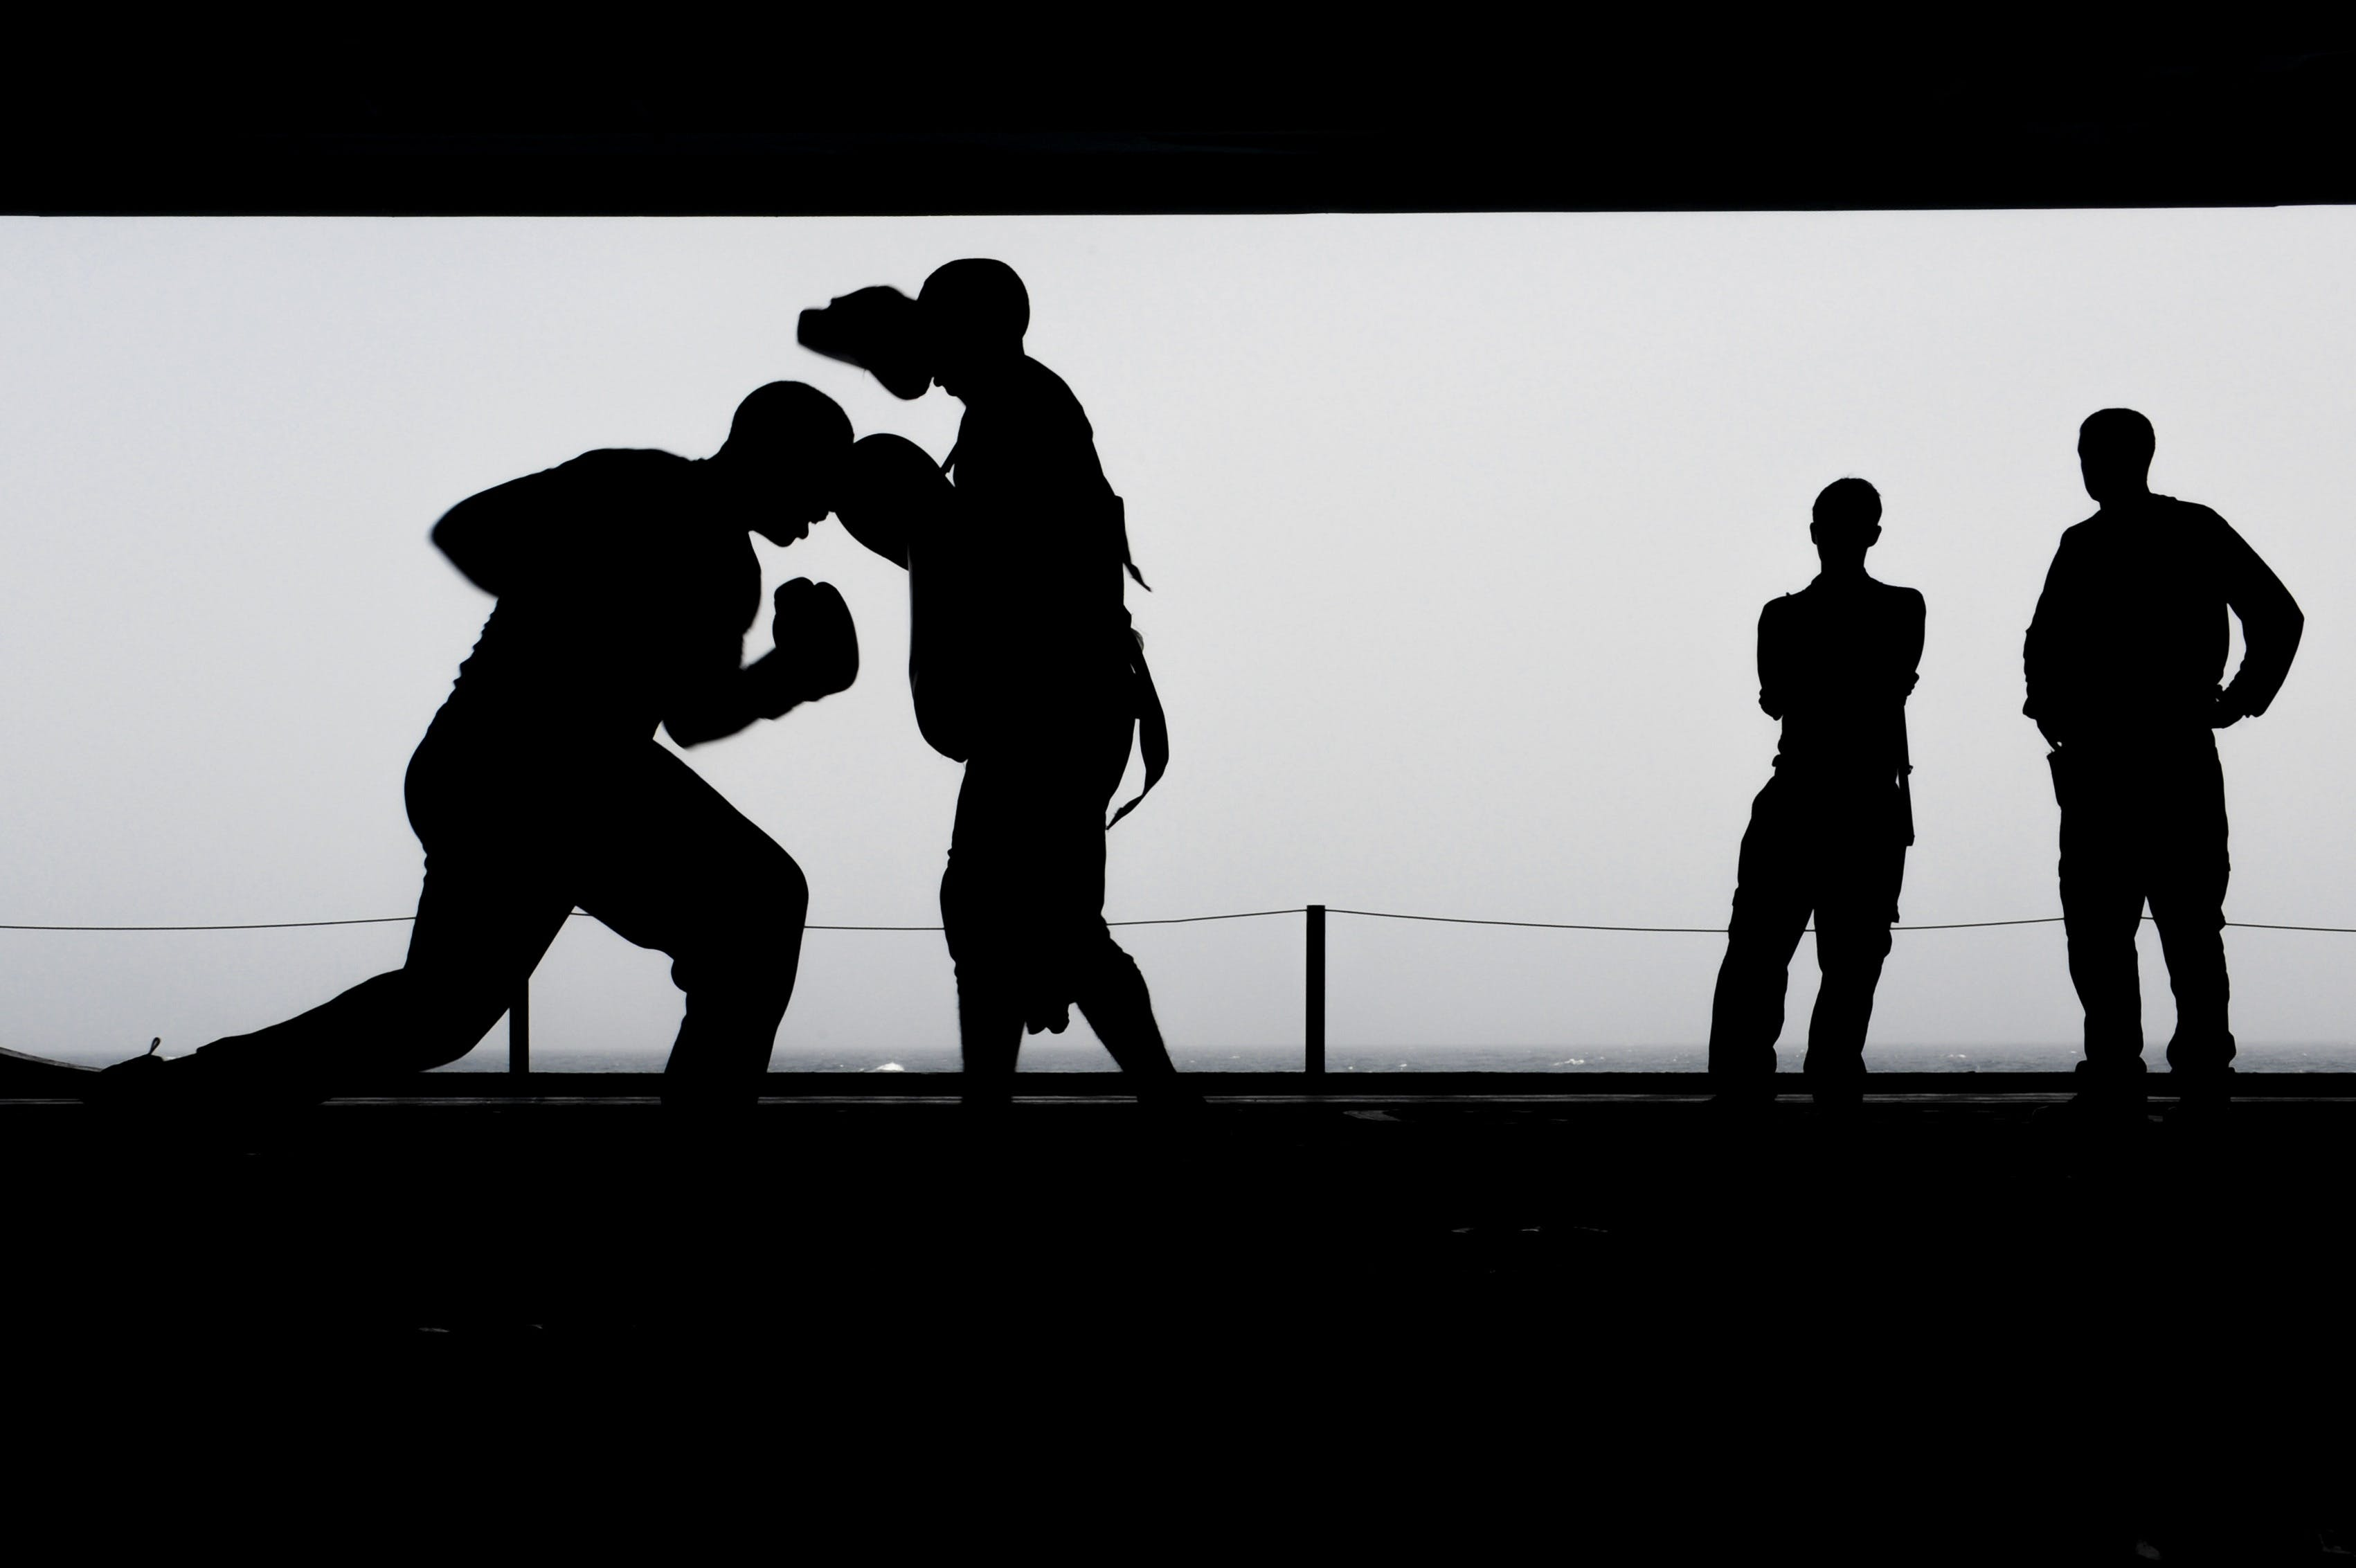 Silhouette Photo of a Men Fighting